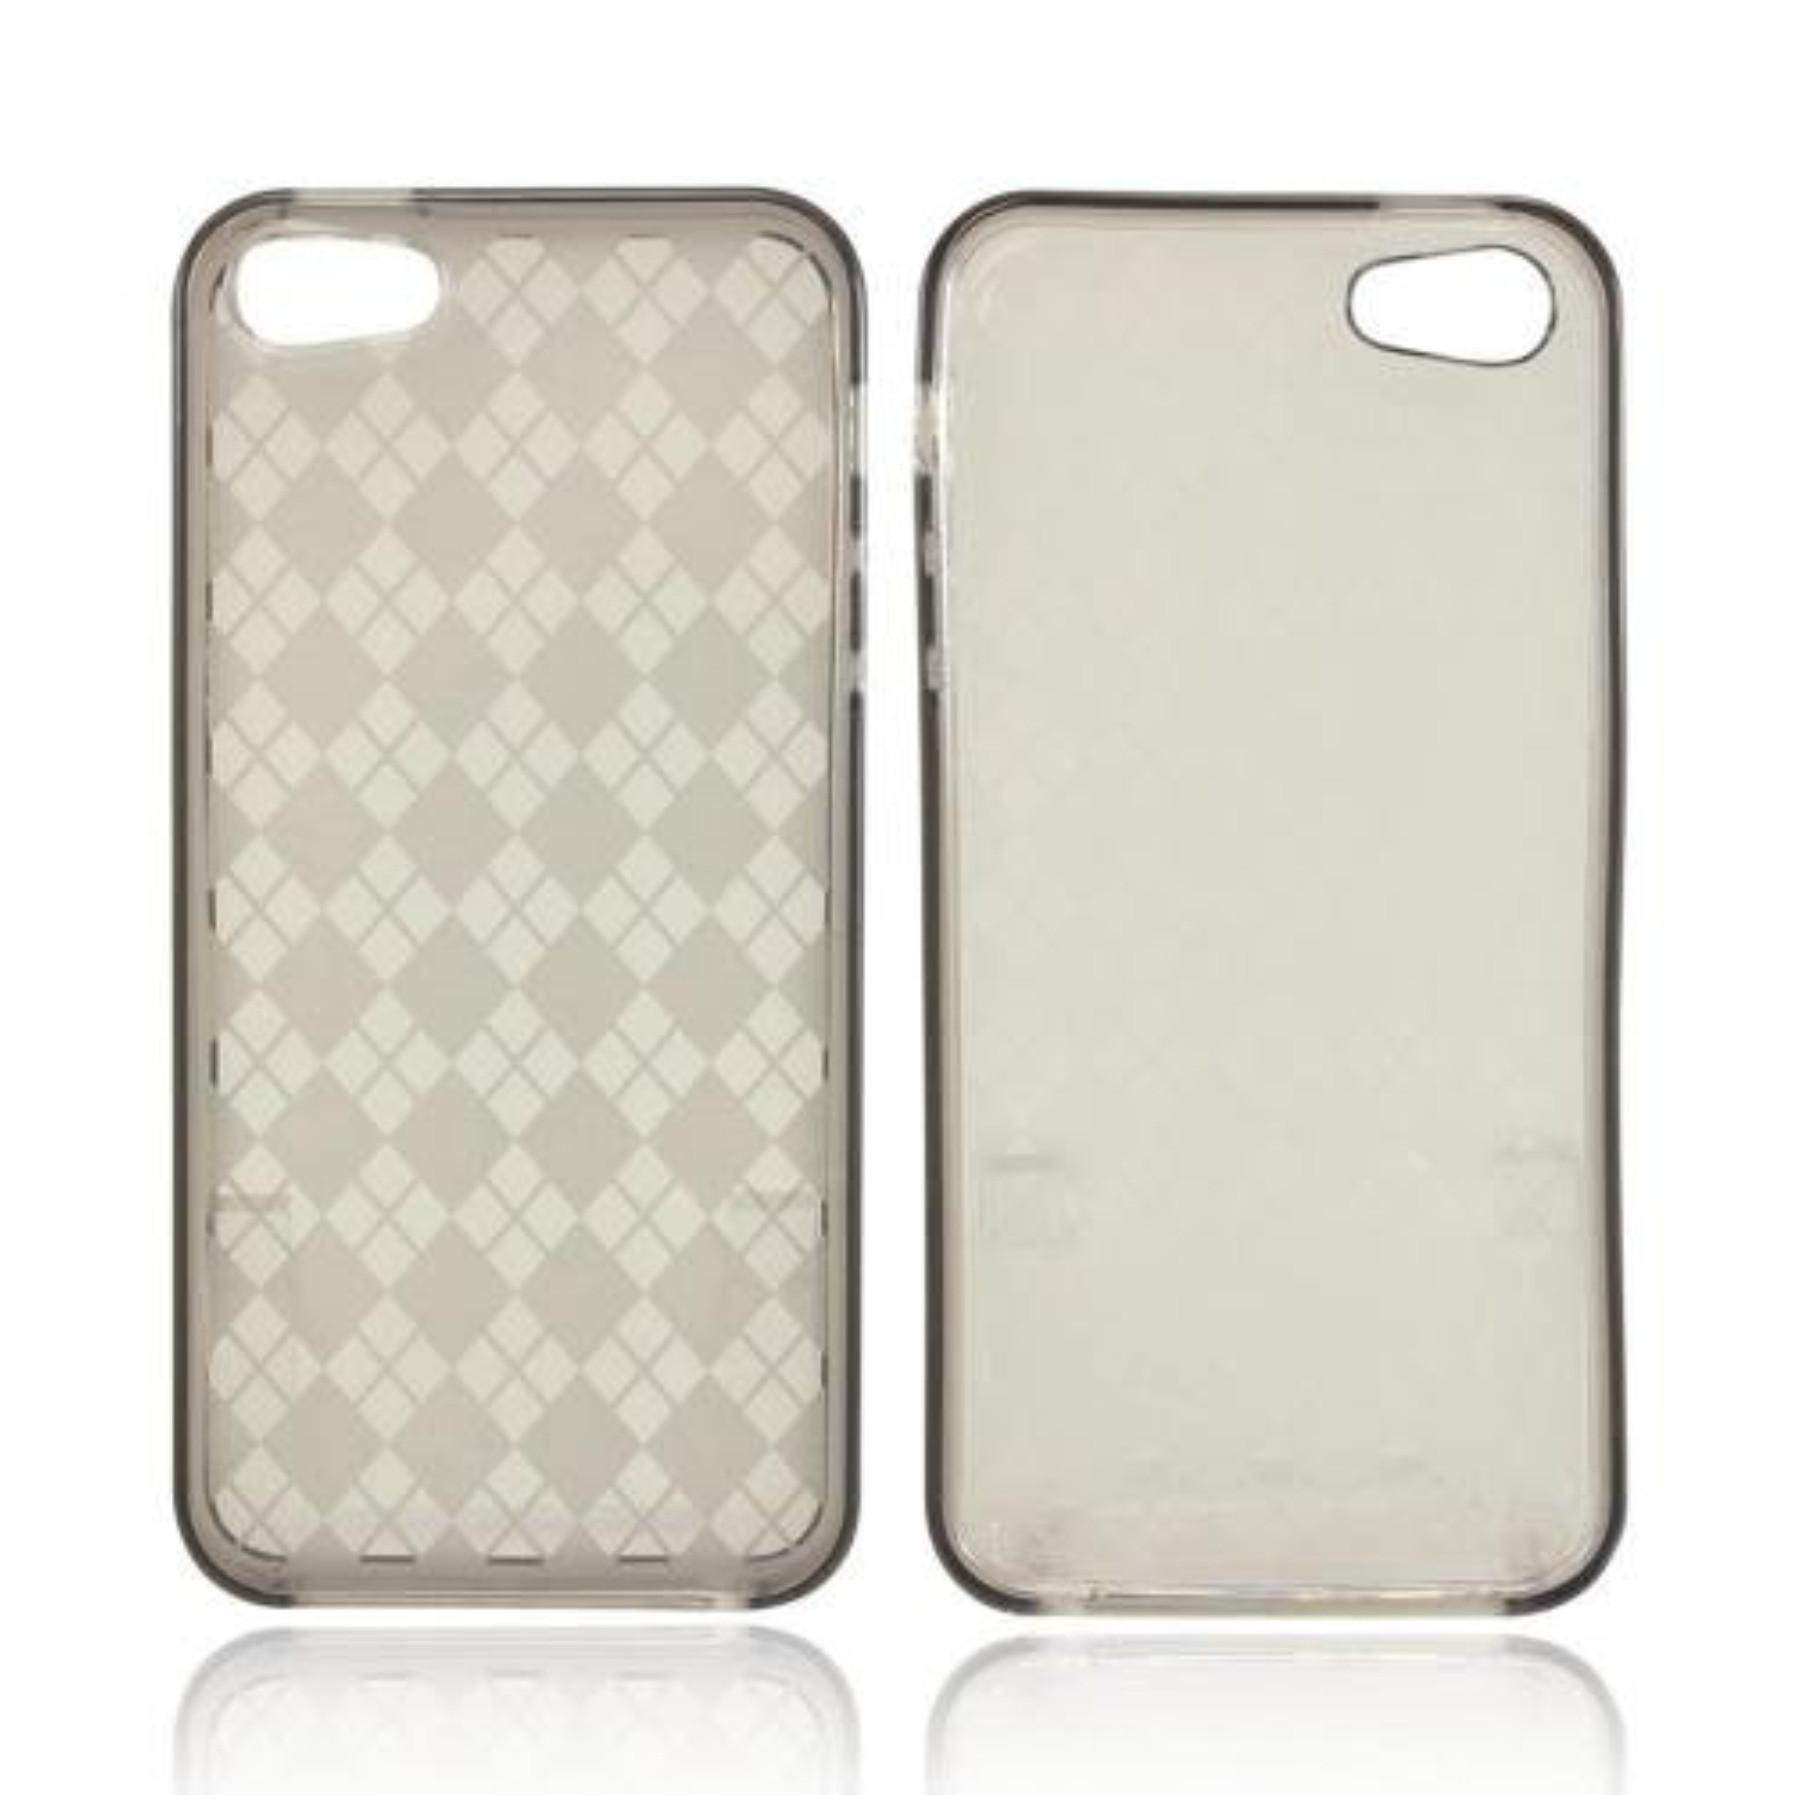 Karendeals Argyle Smoke Apple Iphone Tpu Gel Case